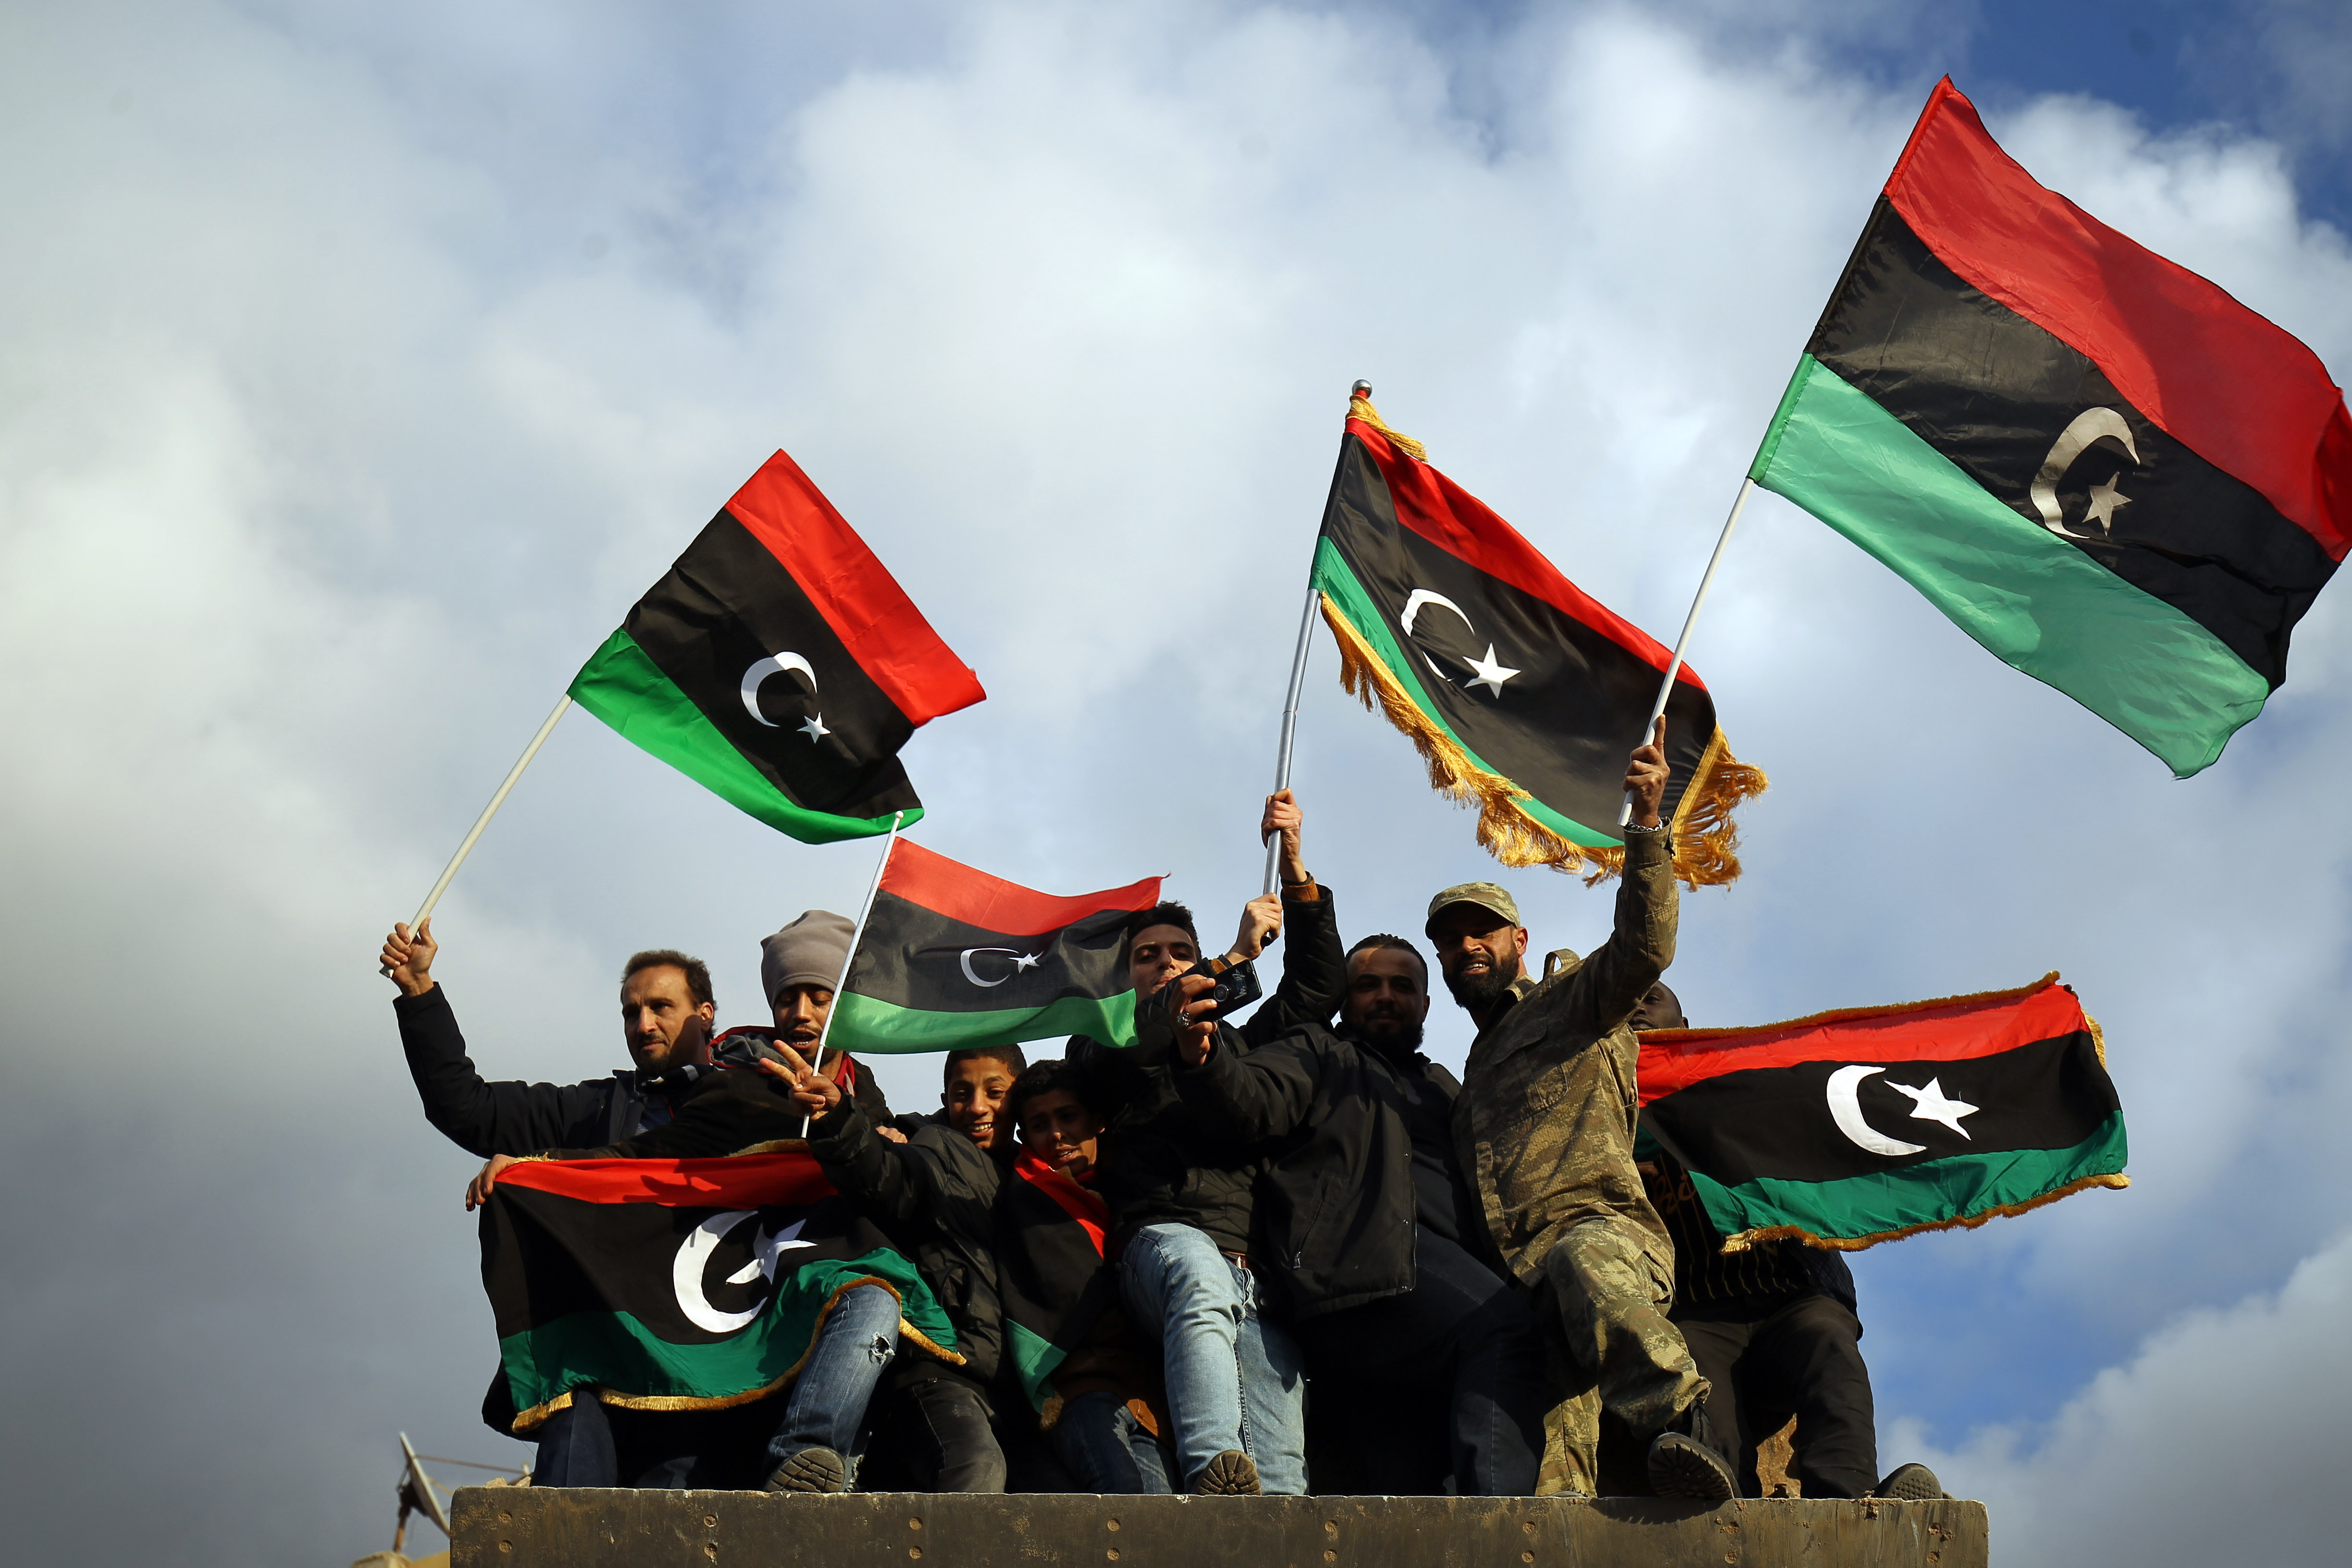 Libyans wave the national flag as they gather to mark the eighth anniversary of the uprising in Libya's second city of Benghazi, on February 17, 2019.